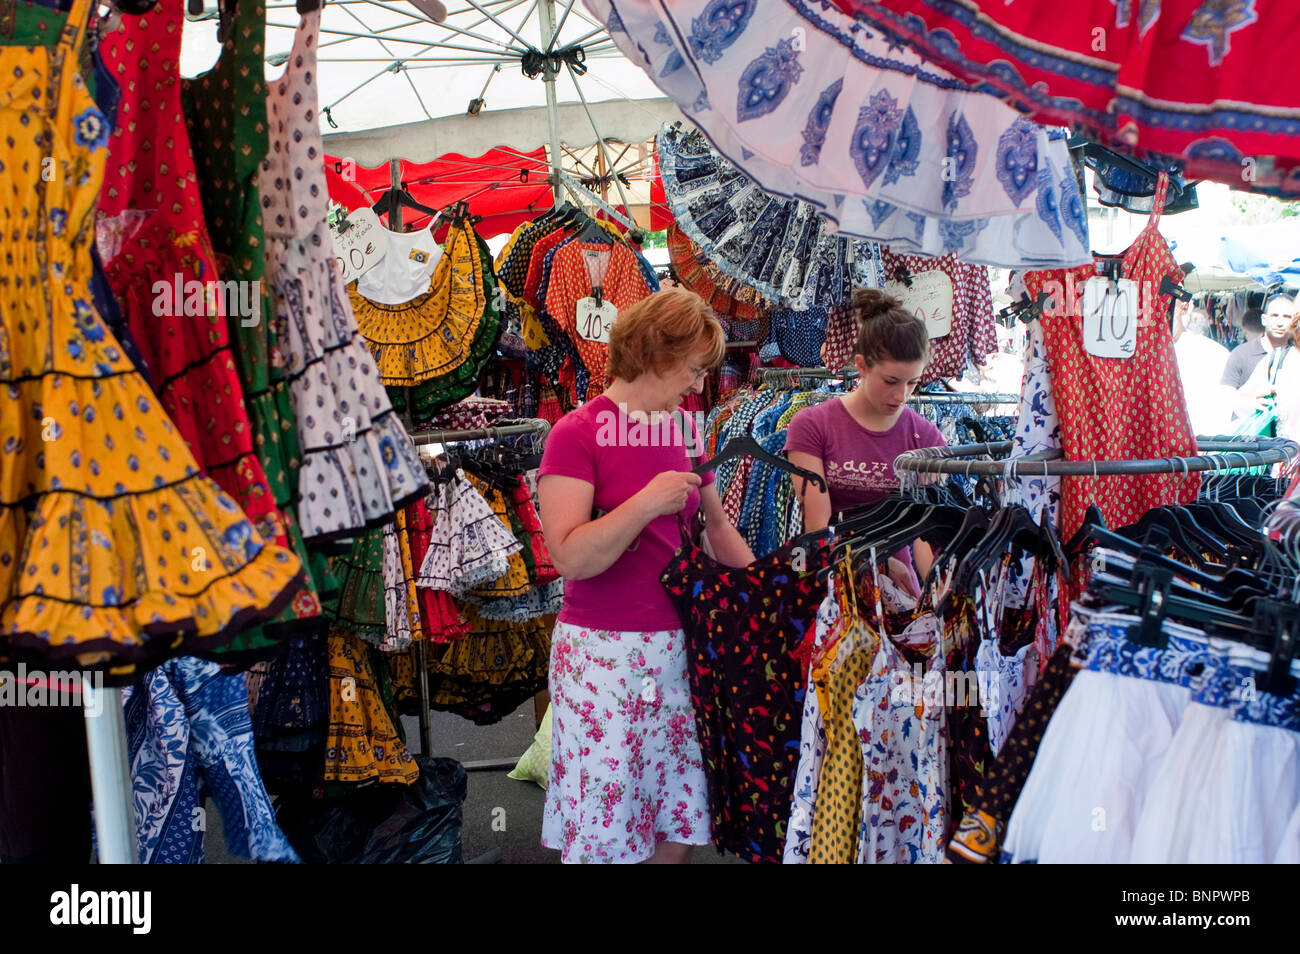 Arles, France, Women Tourists Shopping in Local Provincial Stores, Locally Made Clothing, Souvenirs - Stock Image